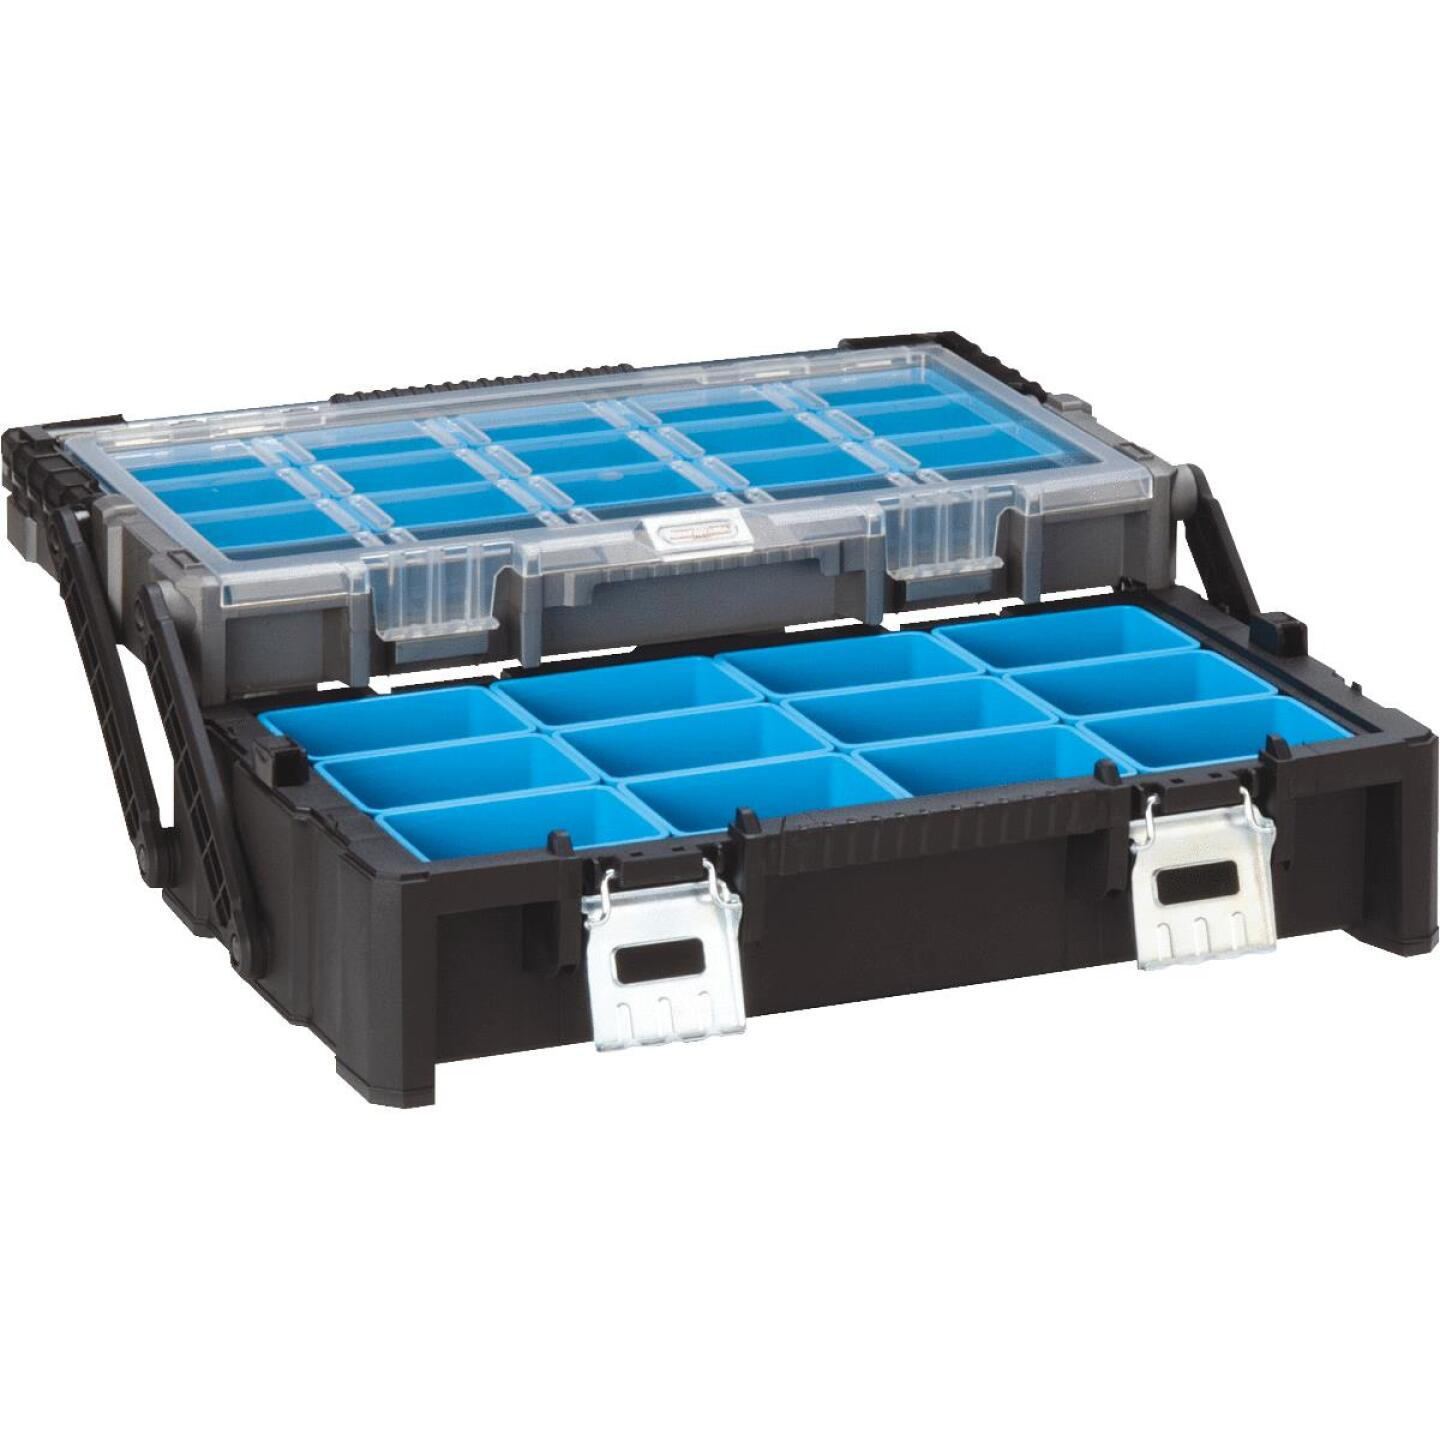 Channellock 22.5 In. Cantilever Parts Organizer Storage Box Image 9